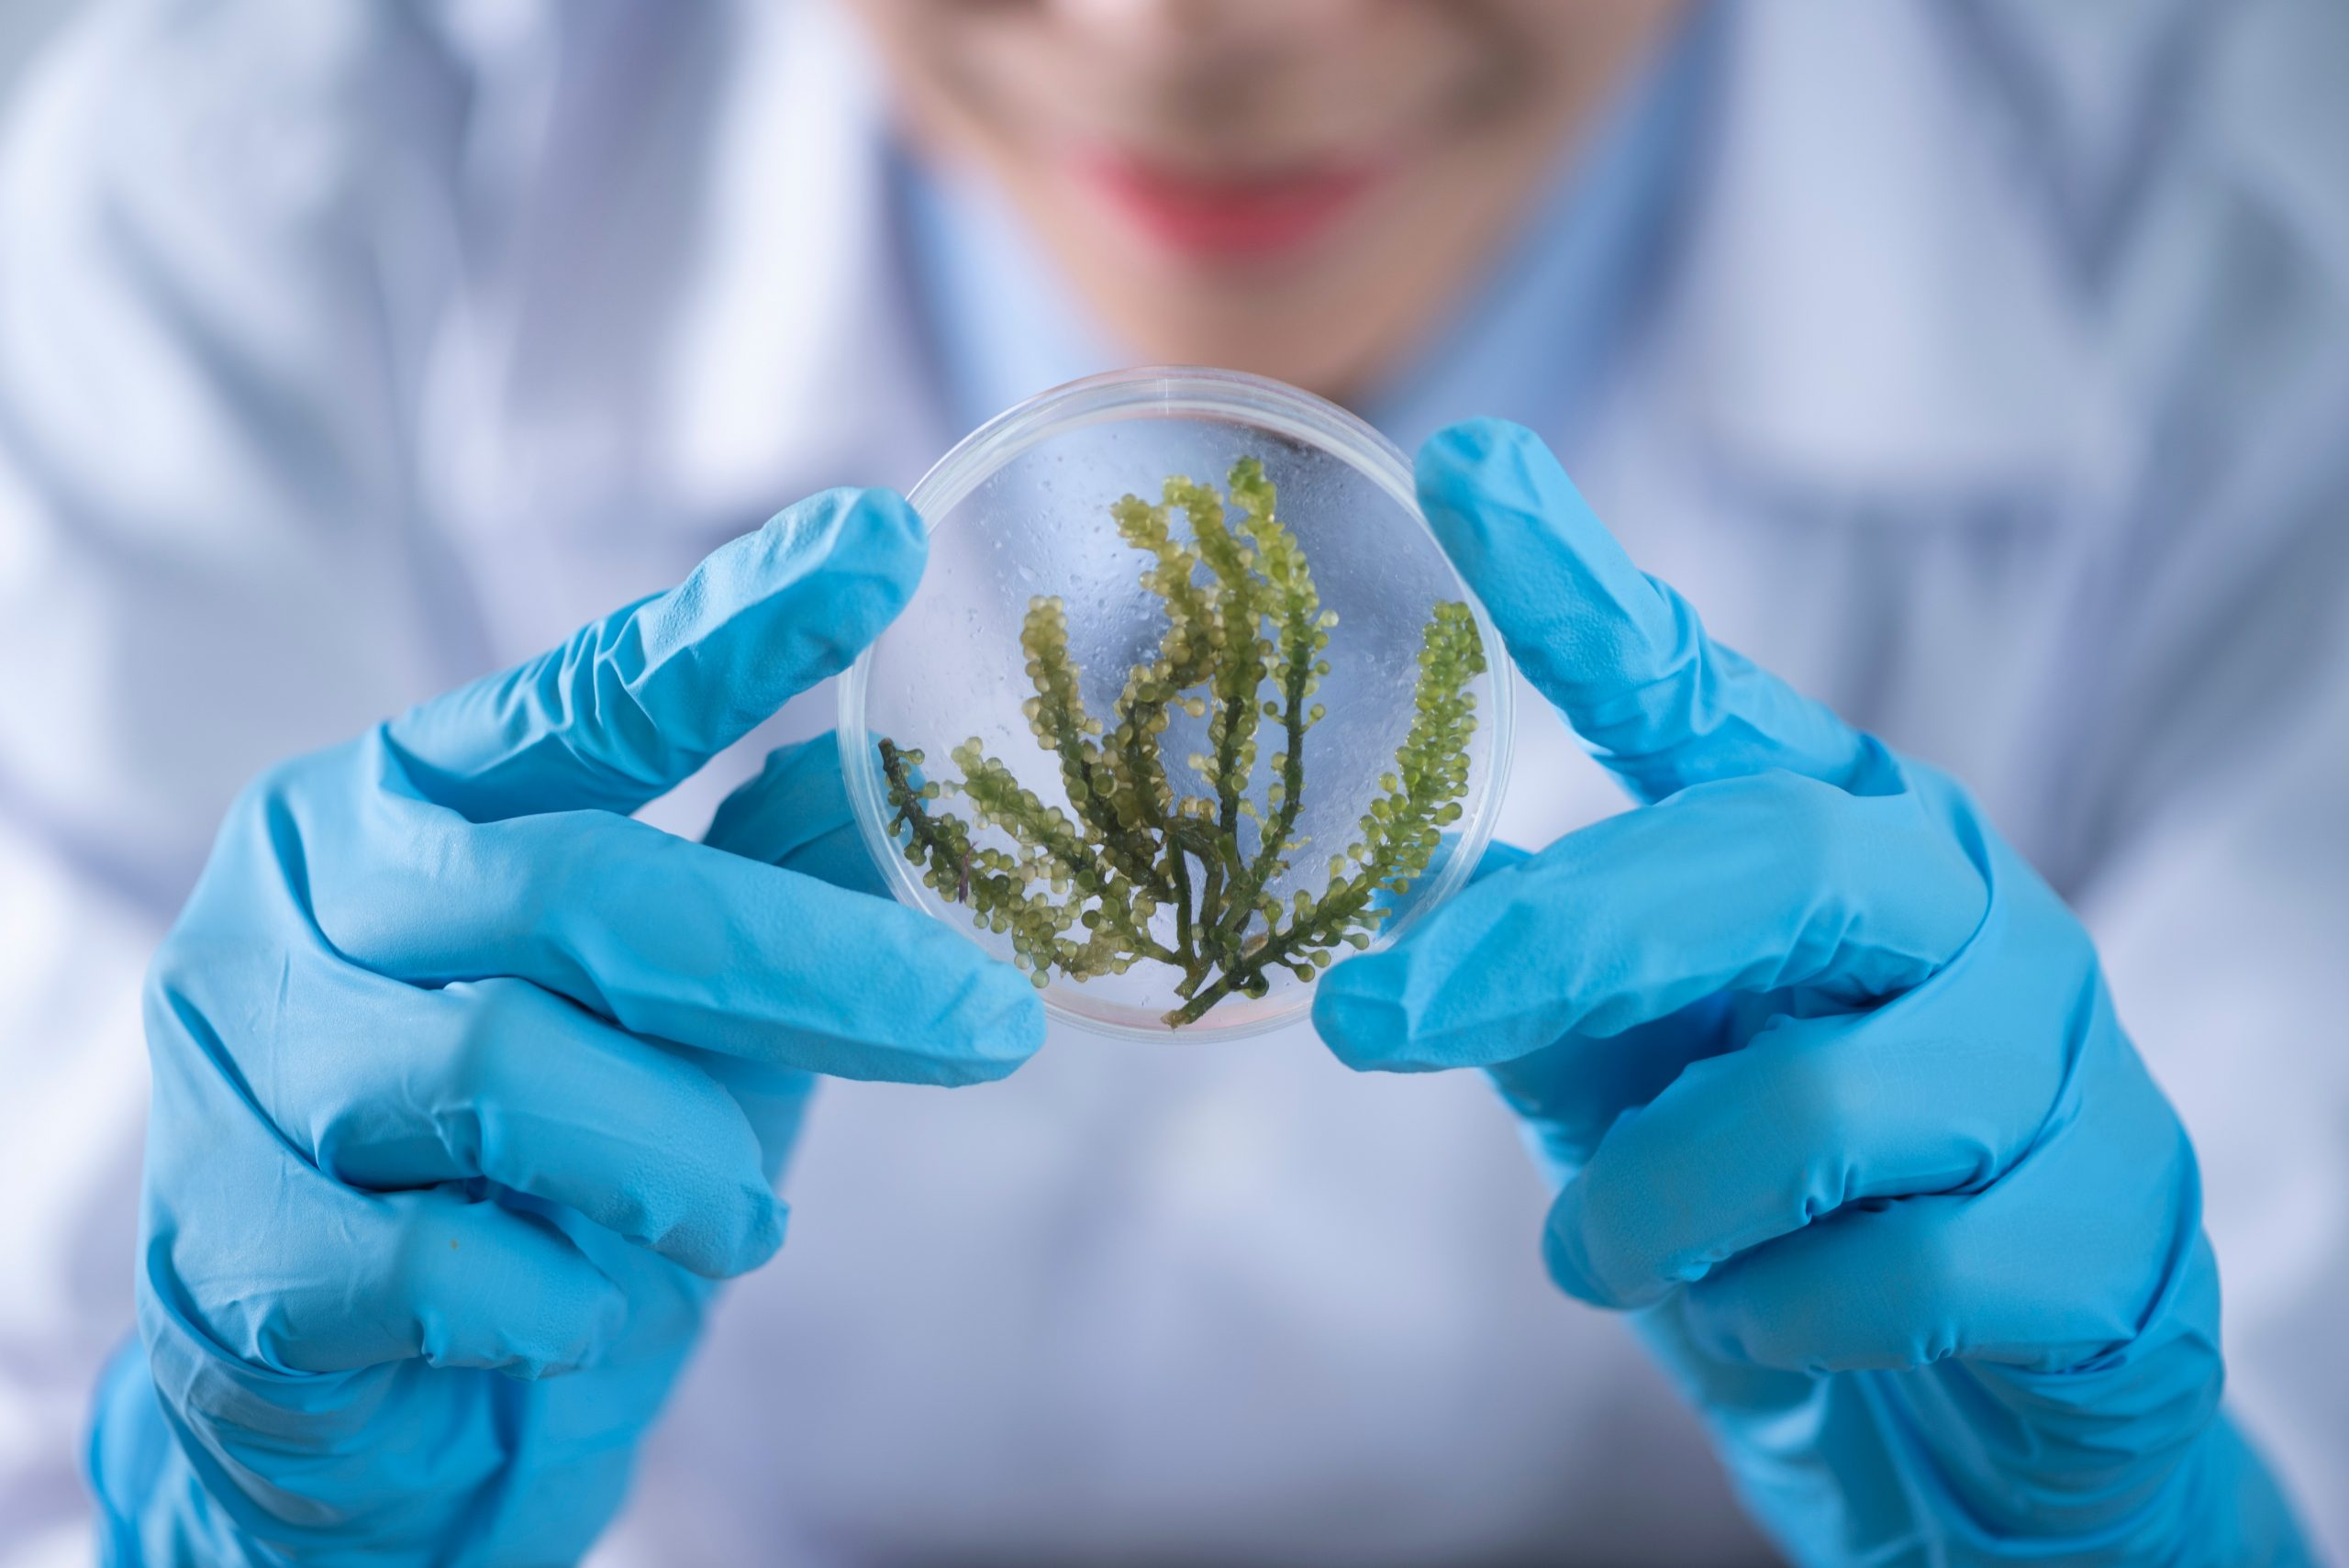 Cannabis Research and Development